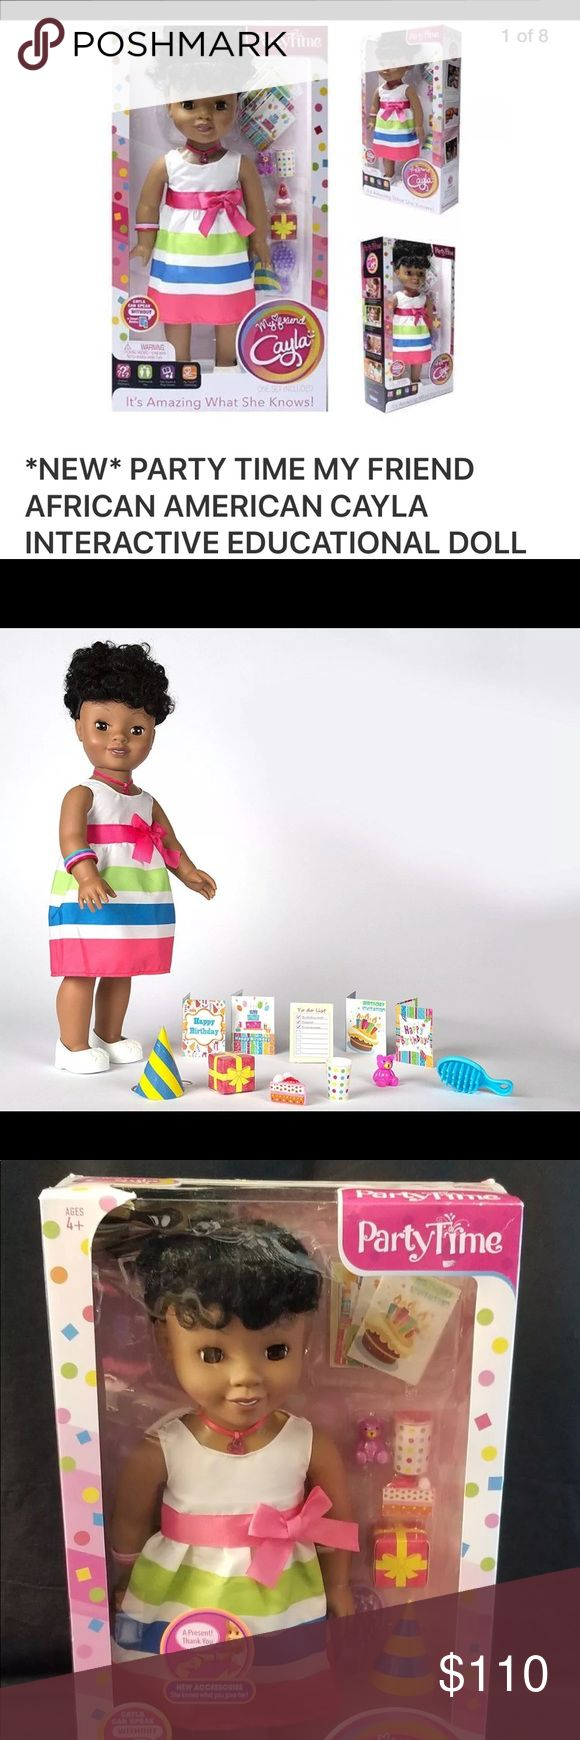 """🔥MY FRIEND CAYLA PART TIME INTERACTIVE DOLL 🎁 My Friend Cayla Party - Time is a beautiful 18"""" interactive doll that offers hours of imaginative play! Cayla can understand and respond to *You* or your child in real-time about almost anything. She can speak English or Spanish Cayla tells stories, play games, and she can sing too. EDUCATIONAL"""" As She can *Answer Millions of questions* about geography, history, math, spelling, and much...much more! •  She Works with Bluetooth Android and iOS…"""